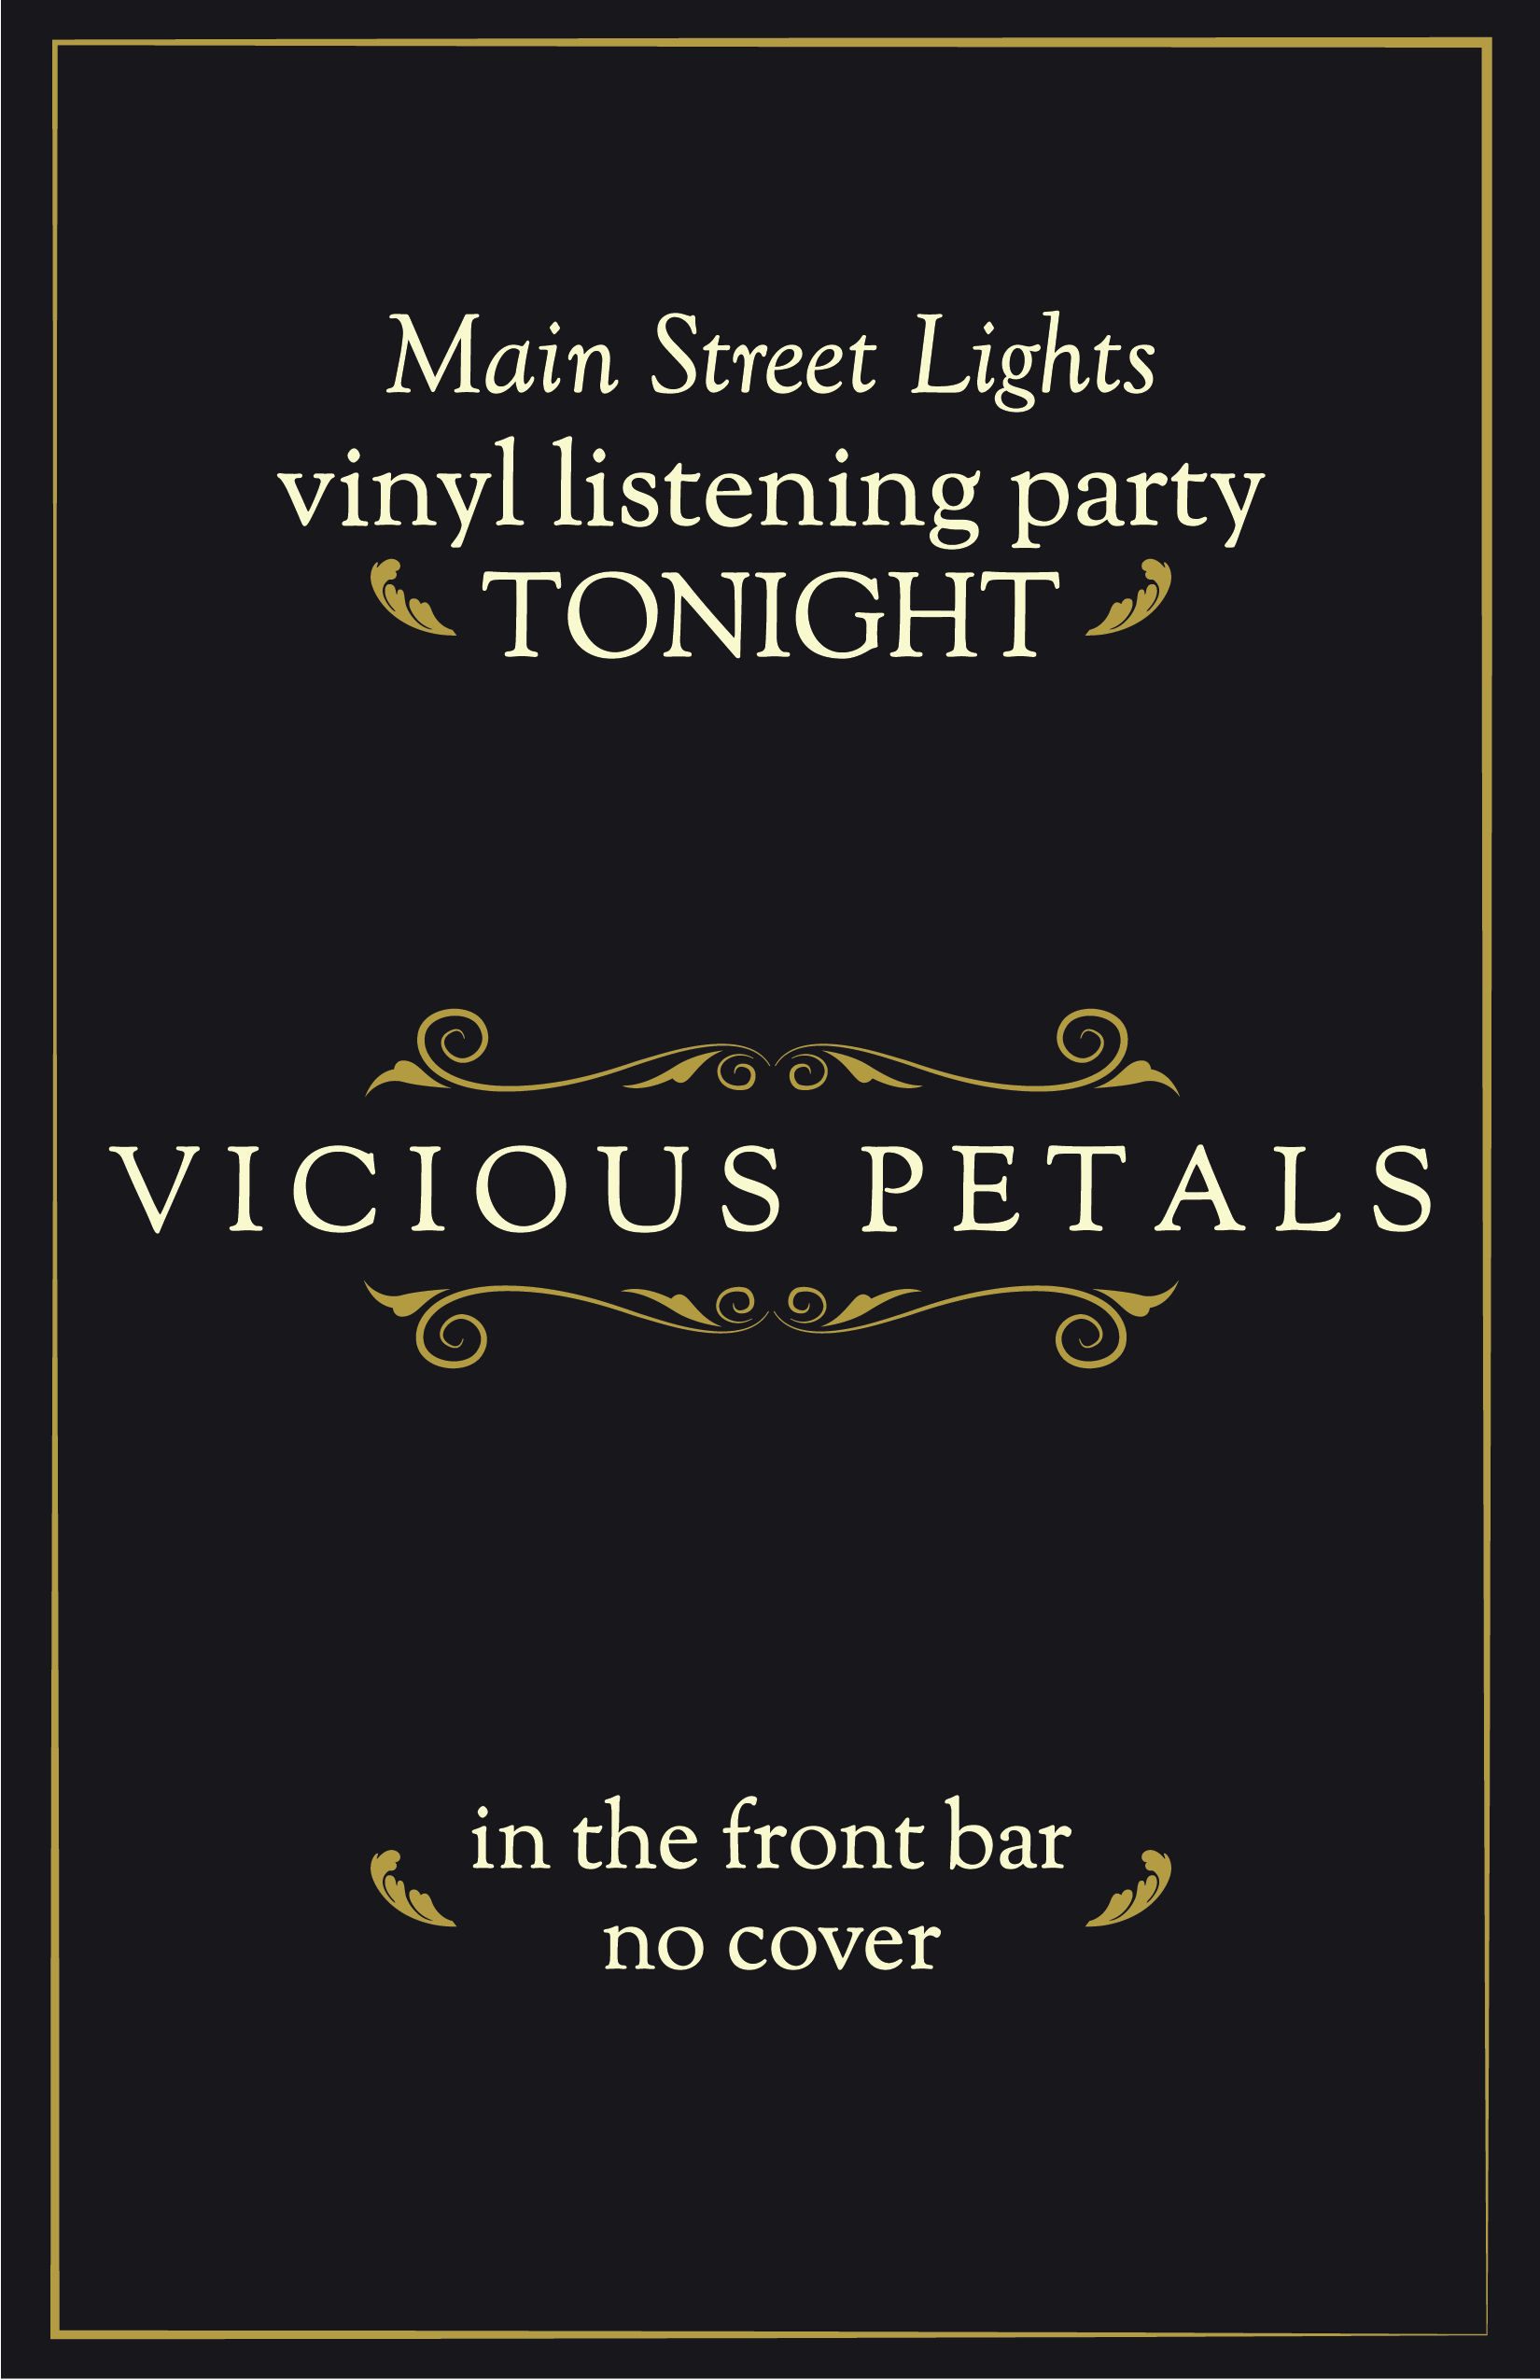 ListeningParty-01.png